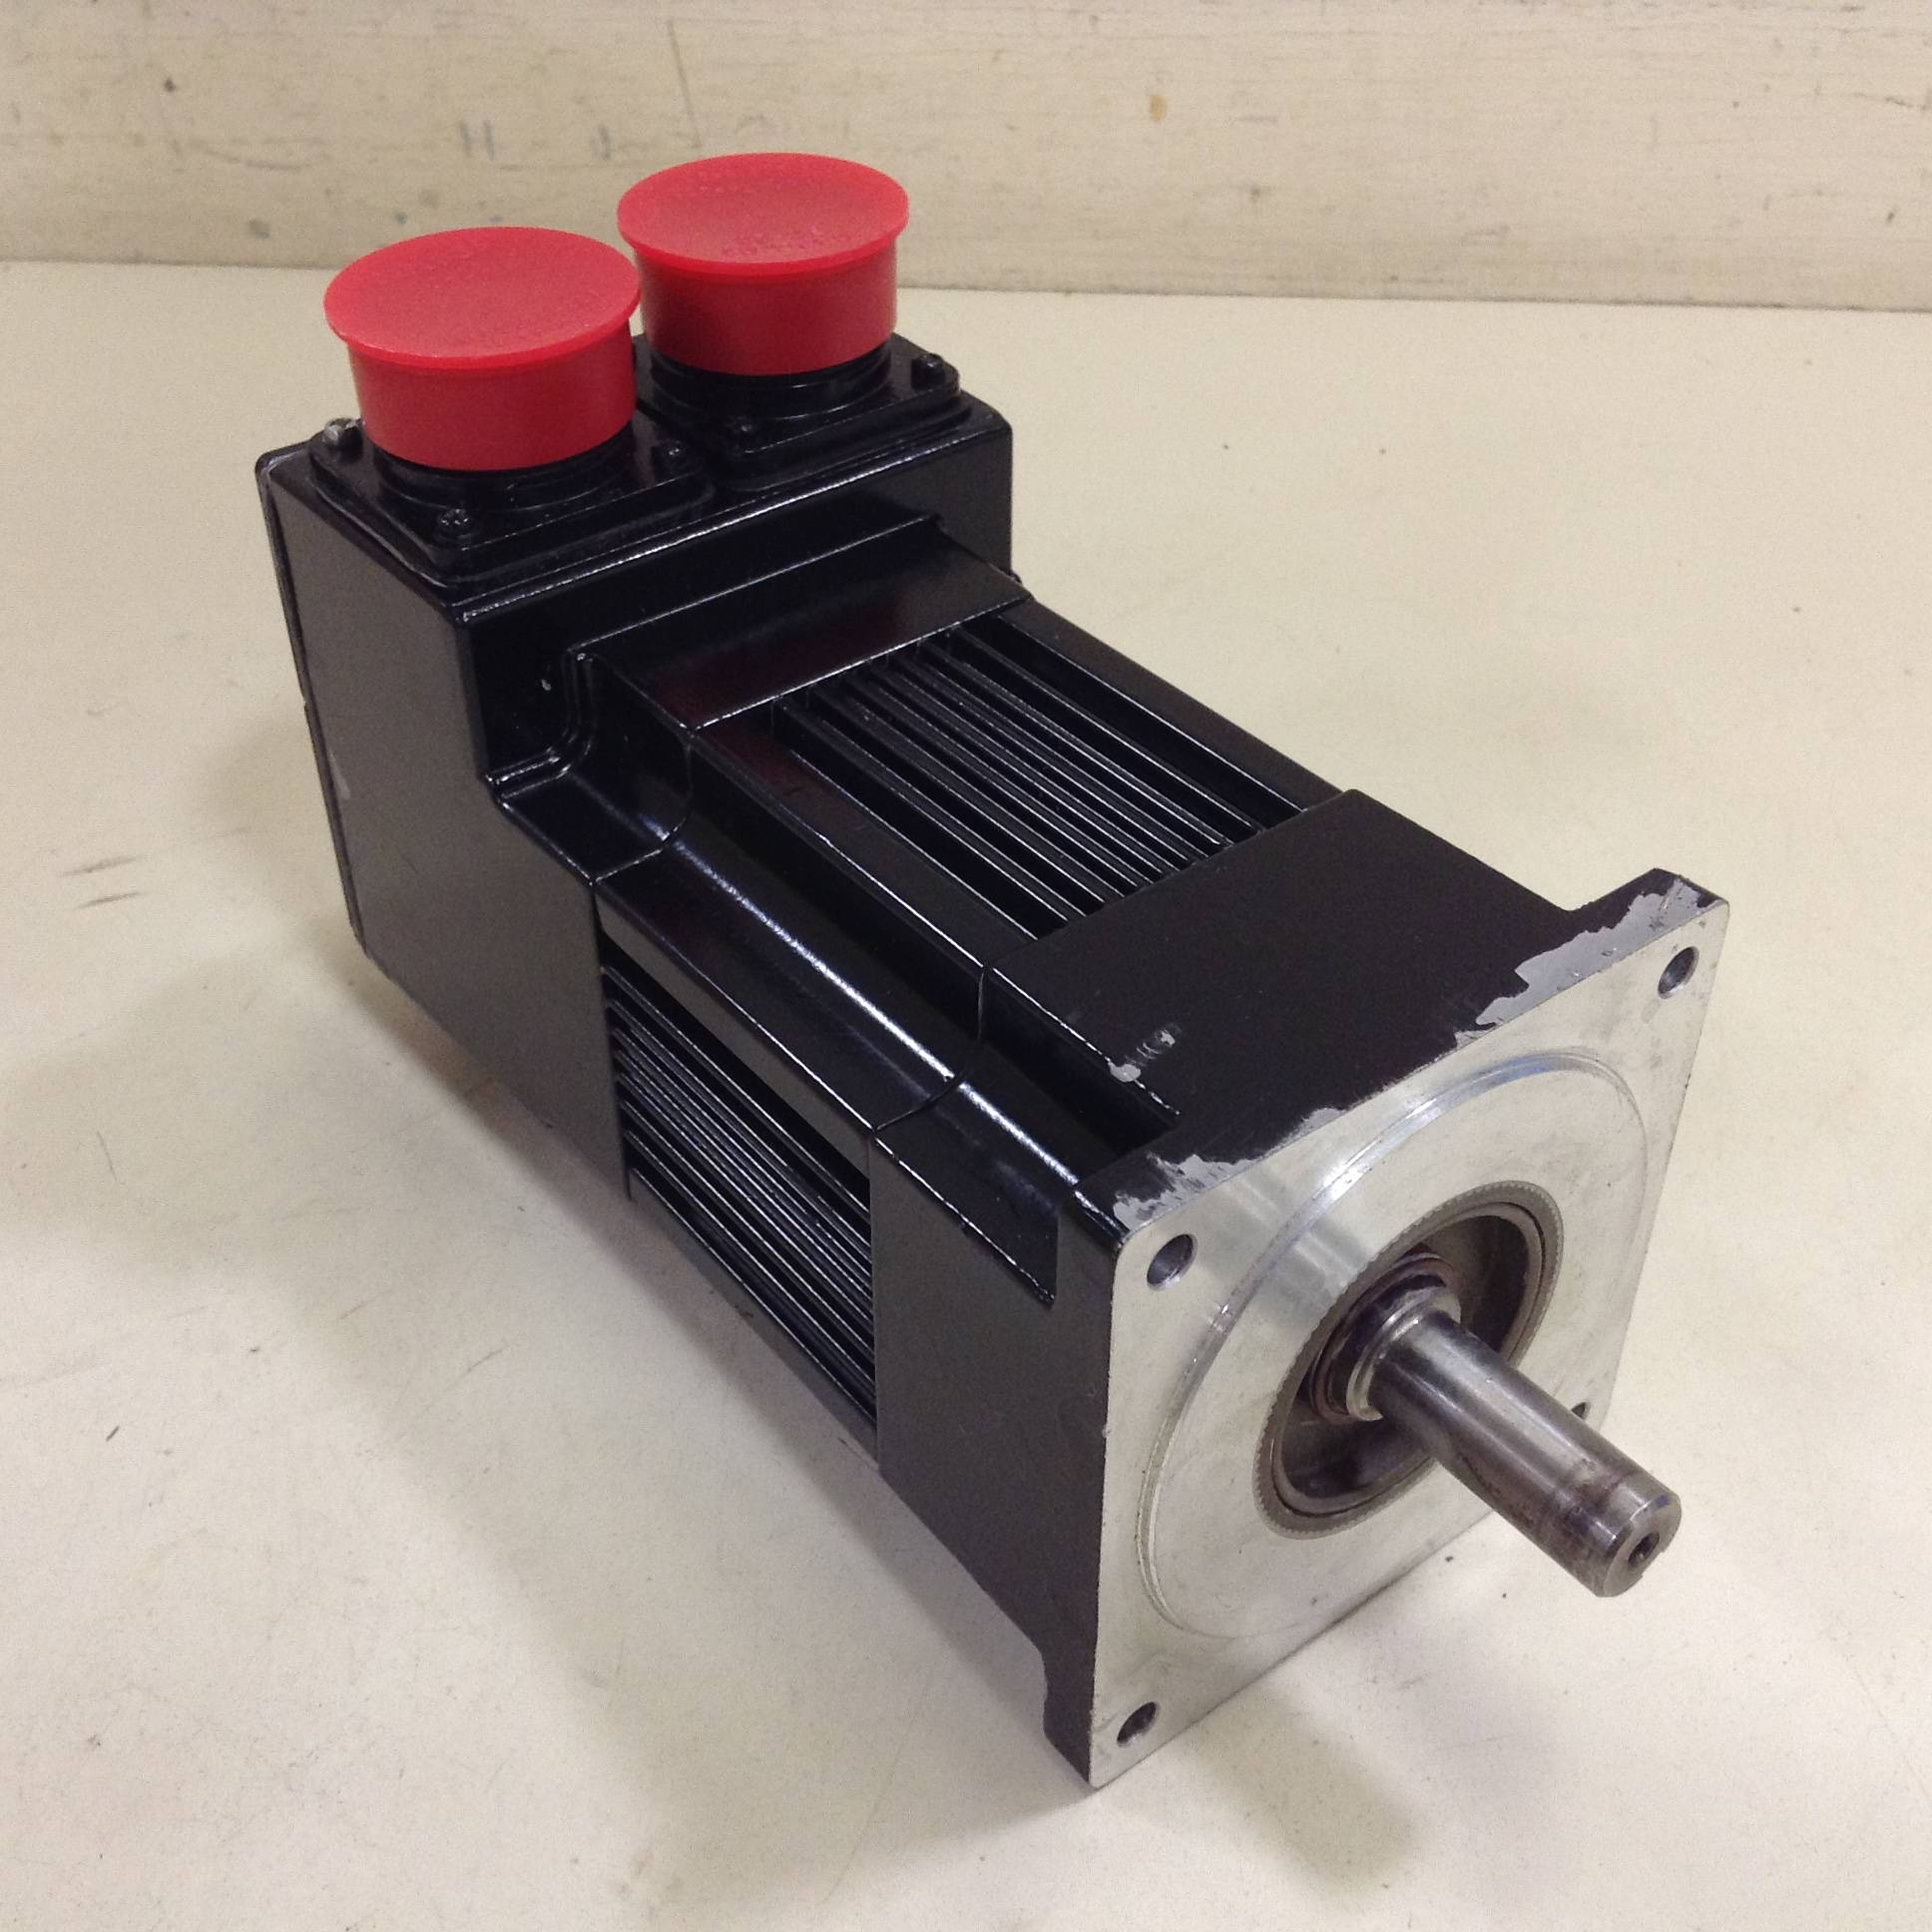 Pacific scientific servo motor r32gen0 r2 ns vs 00 used for Pacific scientific stepper motor